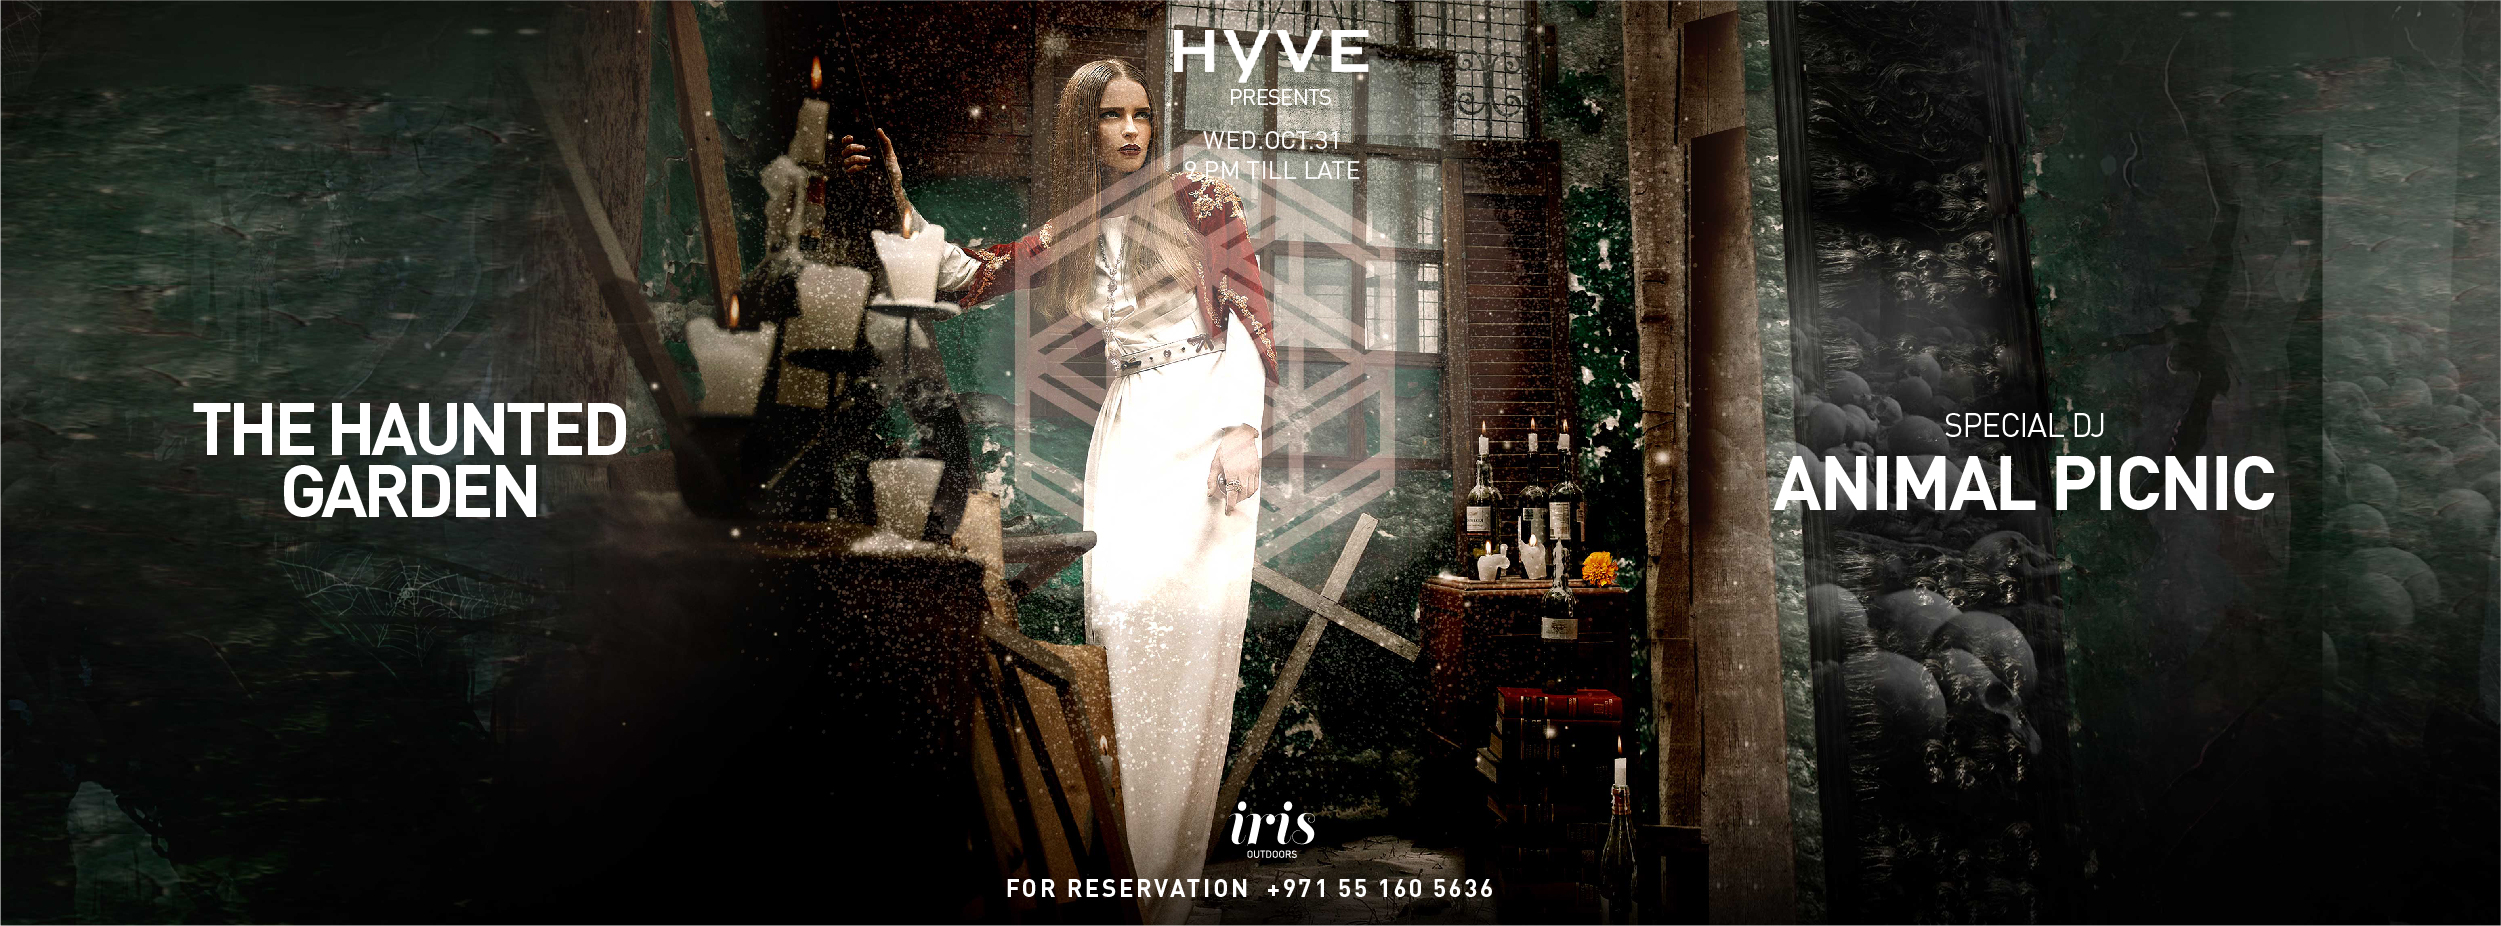 The Haunted Garden #HYVE @ Iris Yas